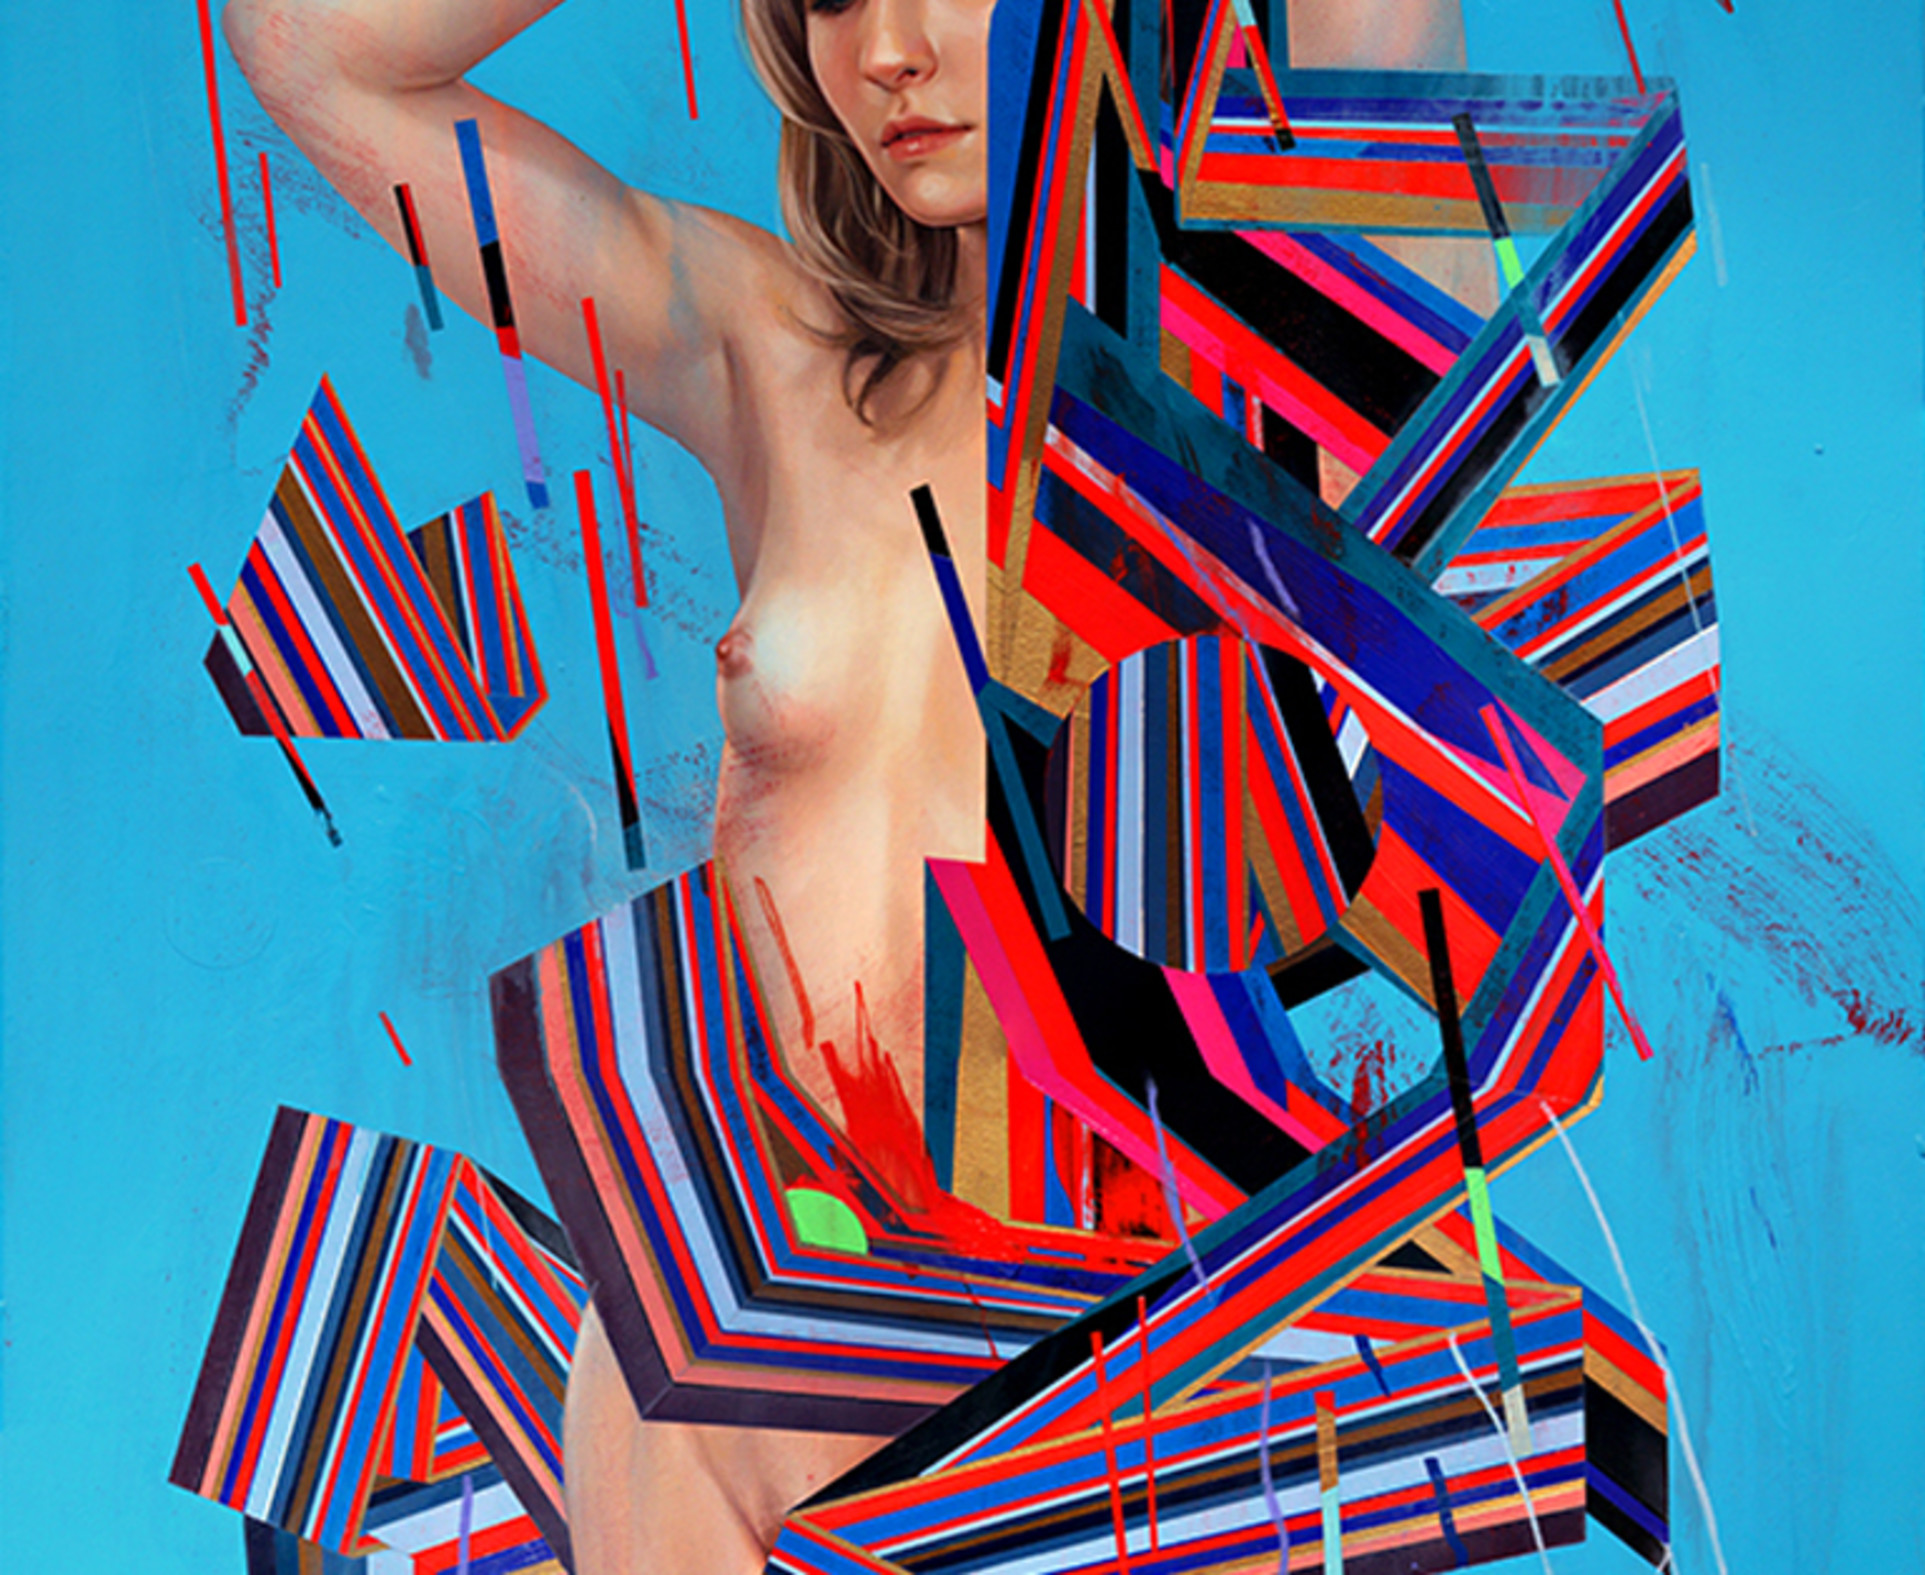 Erik Jones, Dress Of Ribbon, 2014